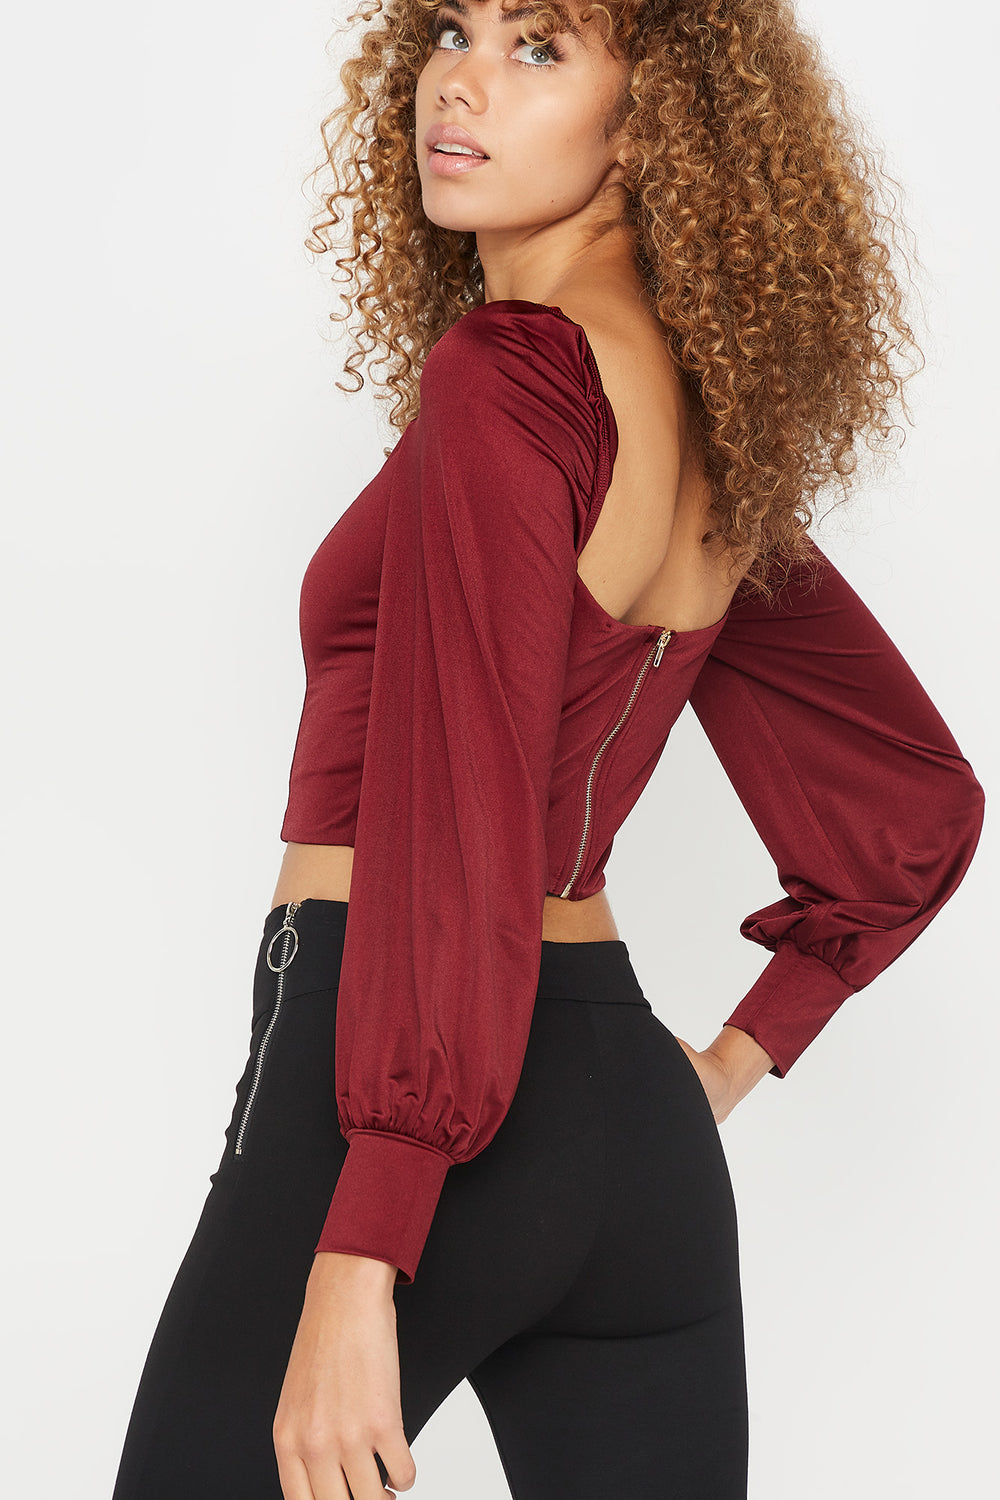 Sweetheart Neck Cropped Long Sleeve Top Burgundy